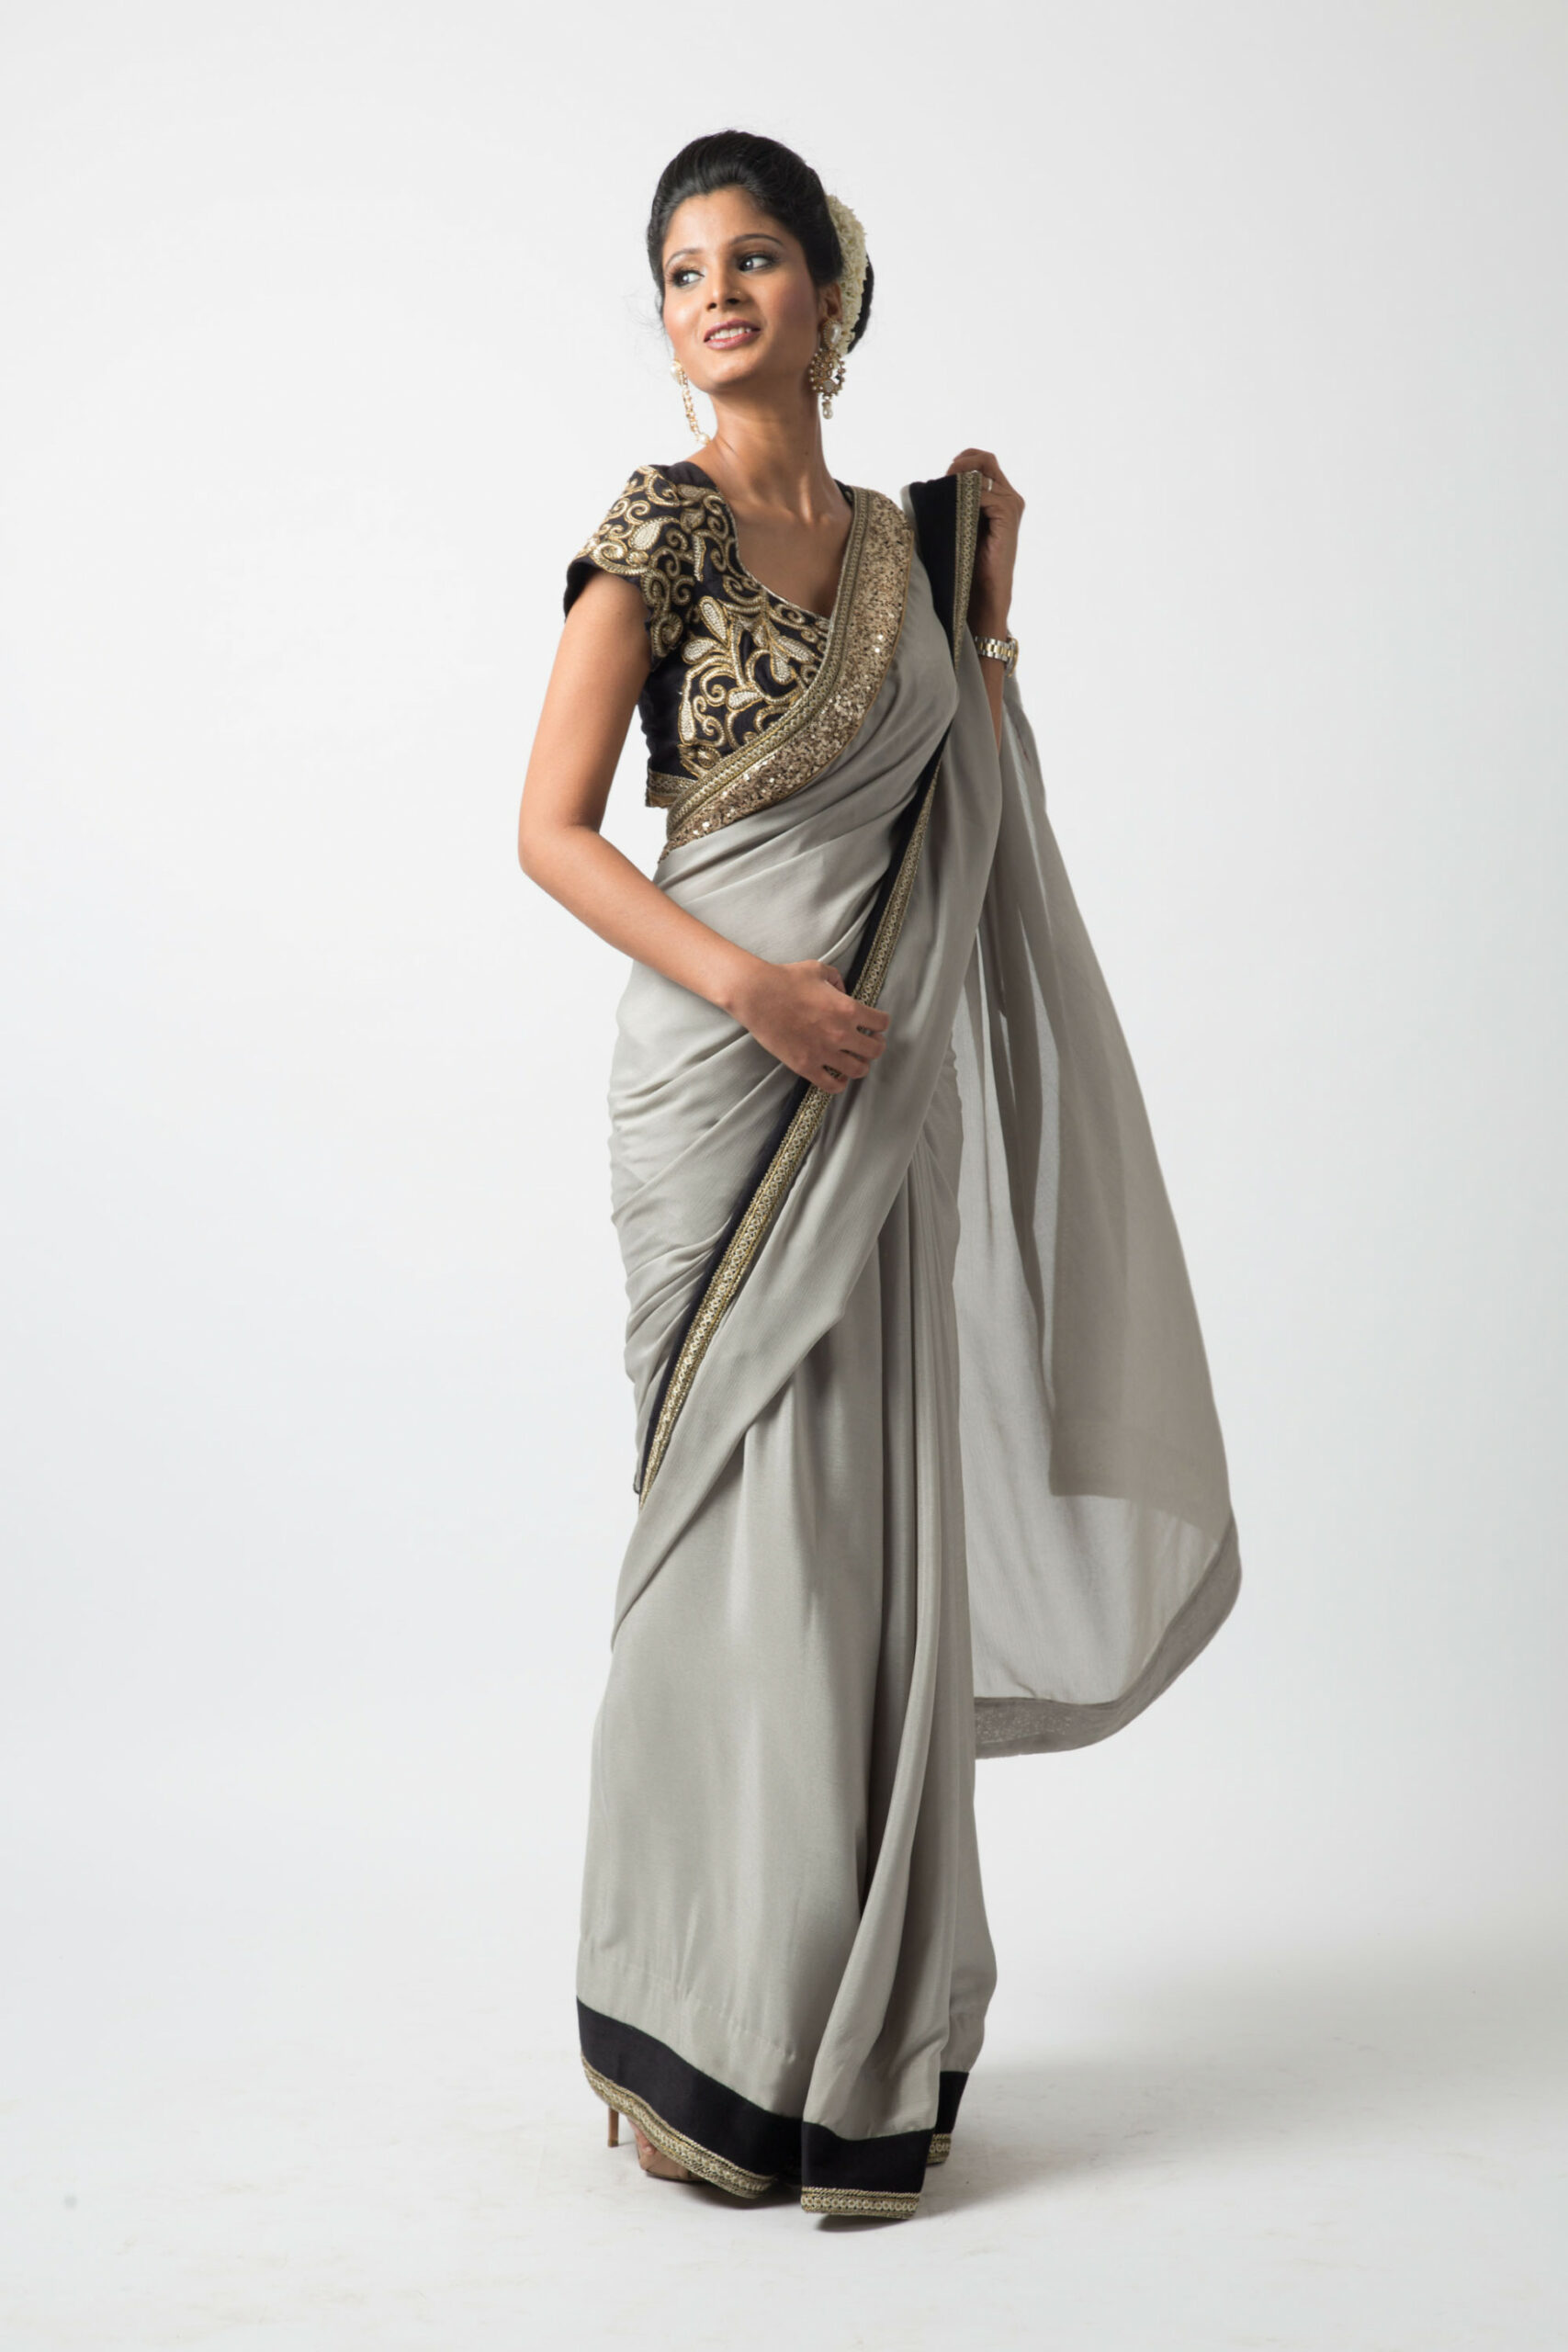 How to Get Designer Saree and Sherwanis on Rent – The